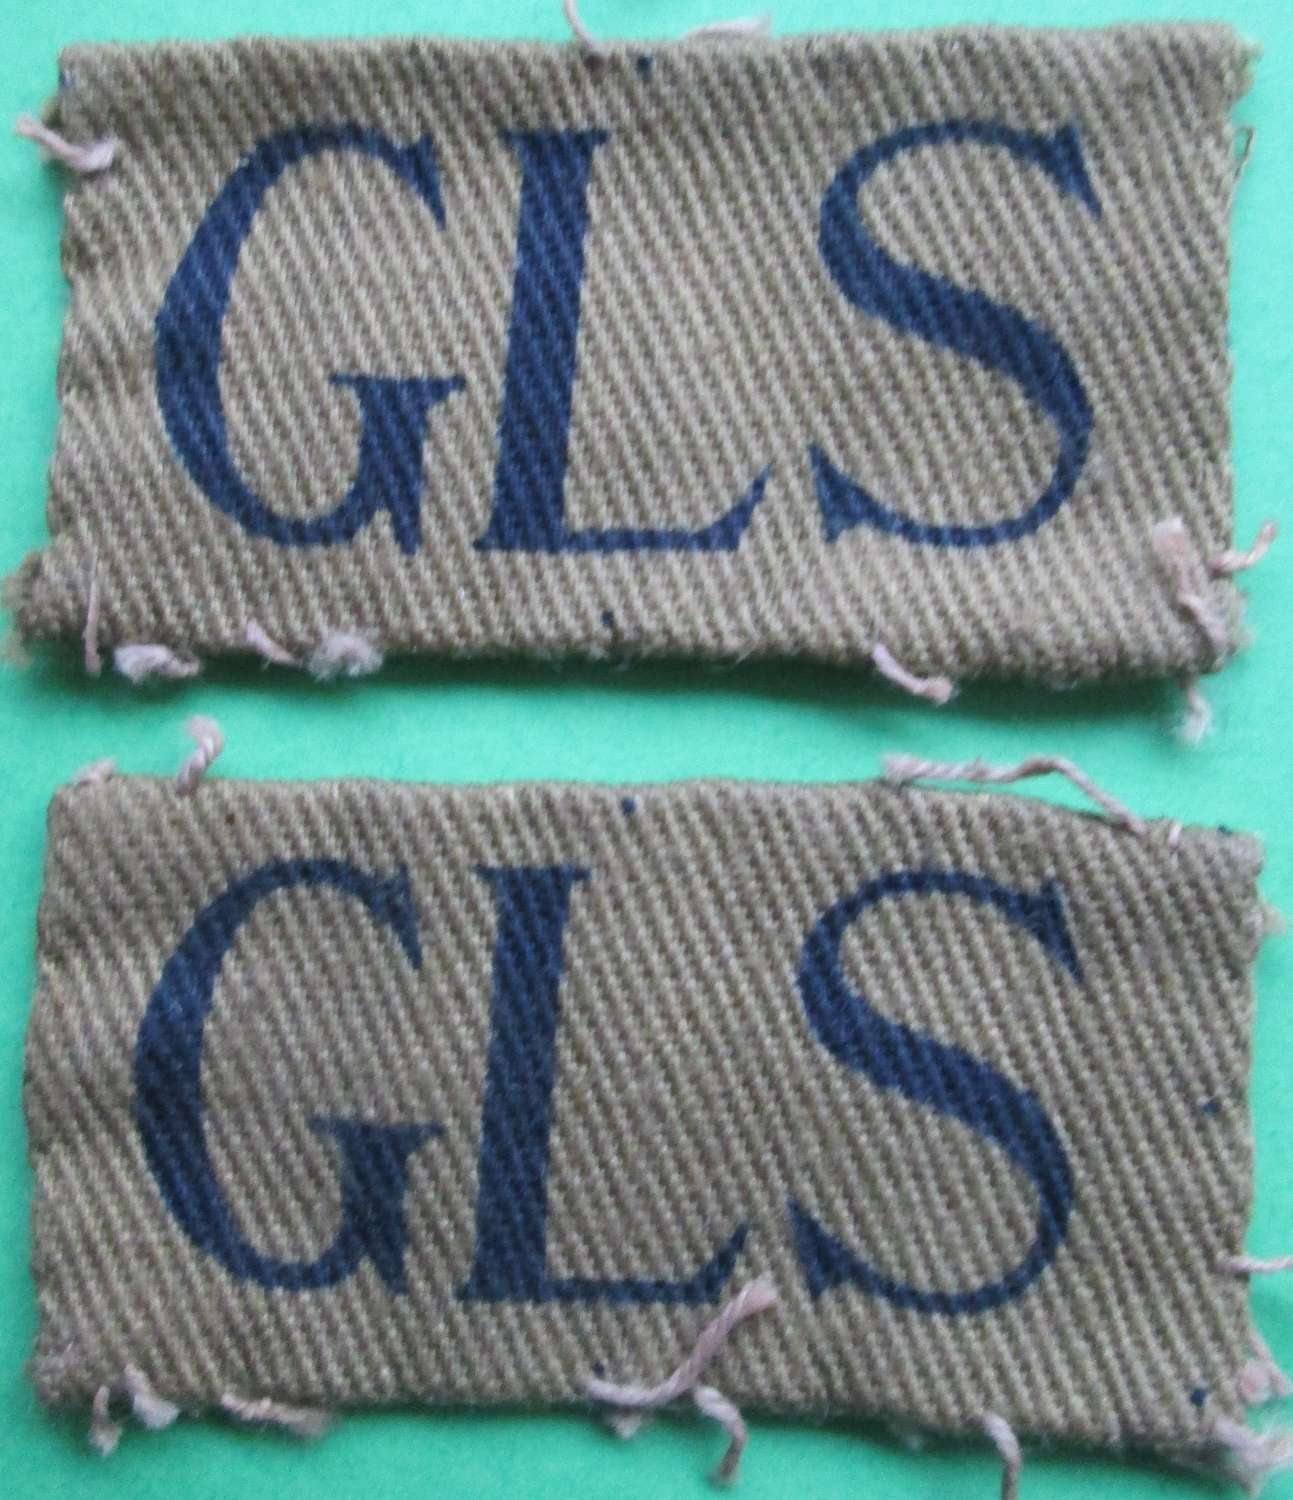 A PAIR OF GLOUCESTERSHIRE HOME GUARD DESIGNATION FLASHES